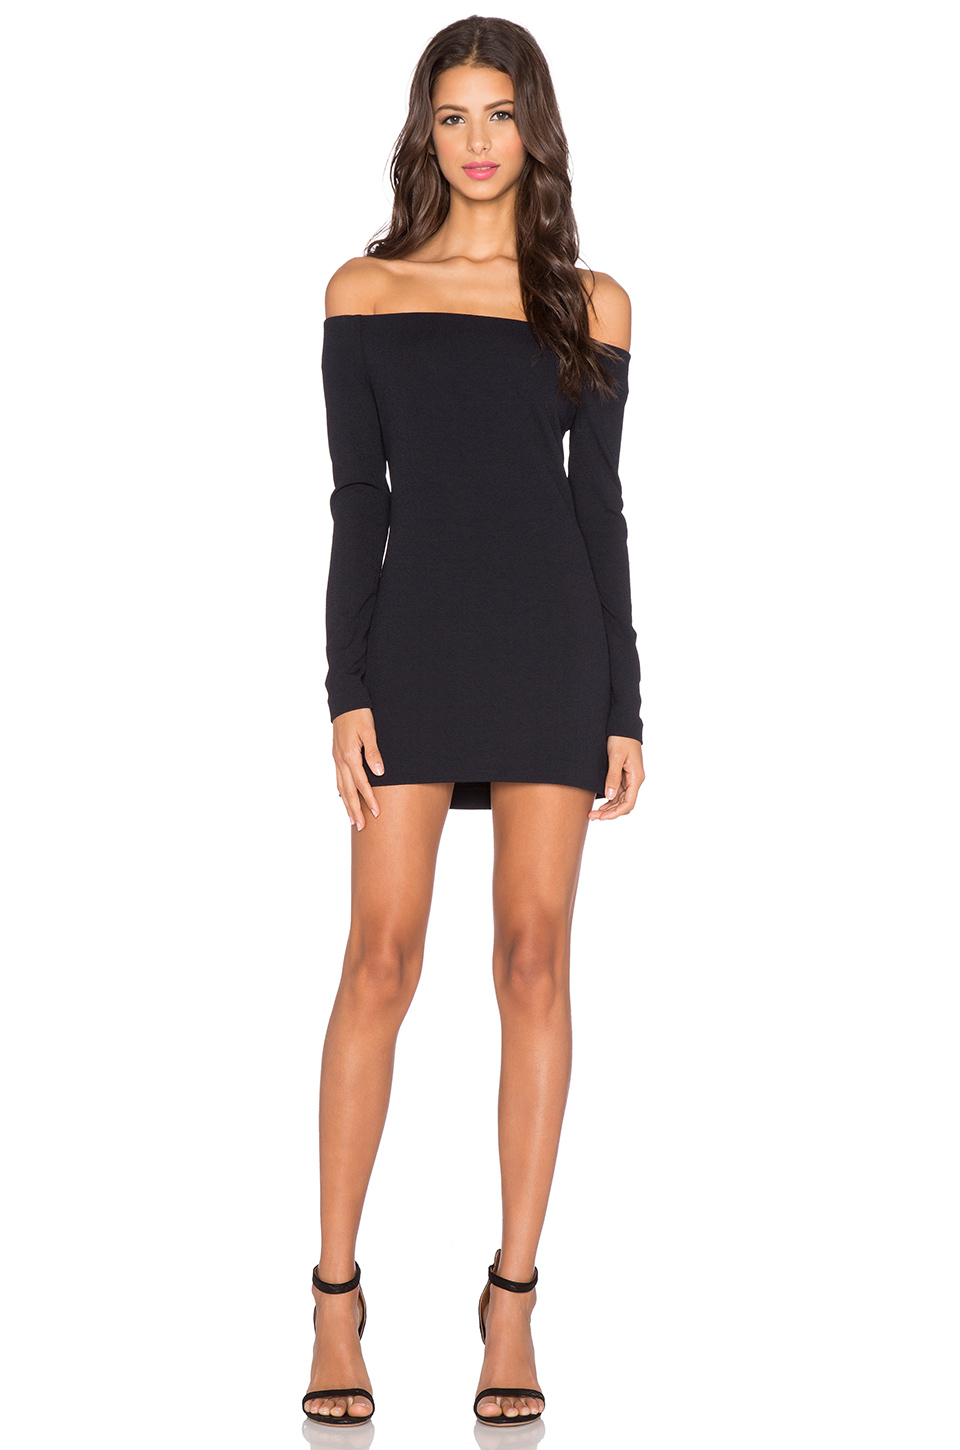 c22c55607e54 Tibi Off-The-Shoulder Mini Dress in Black - Lyst